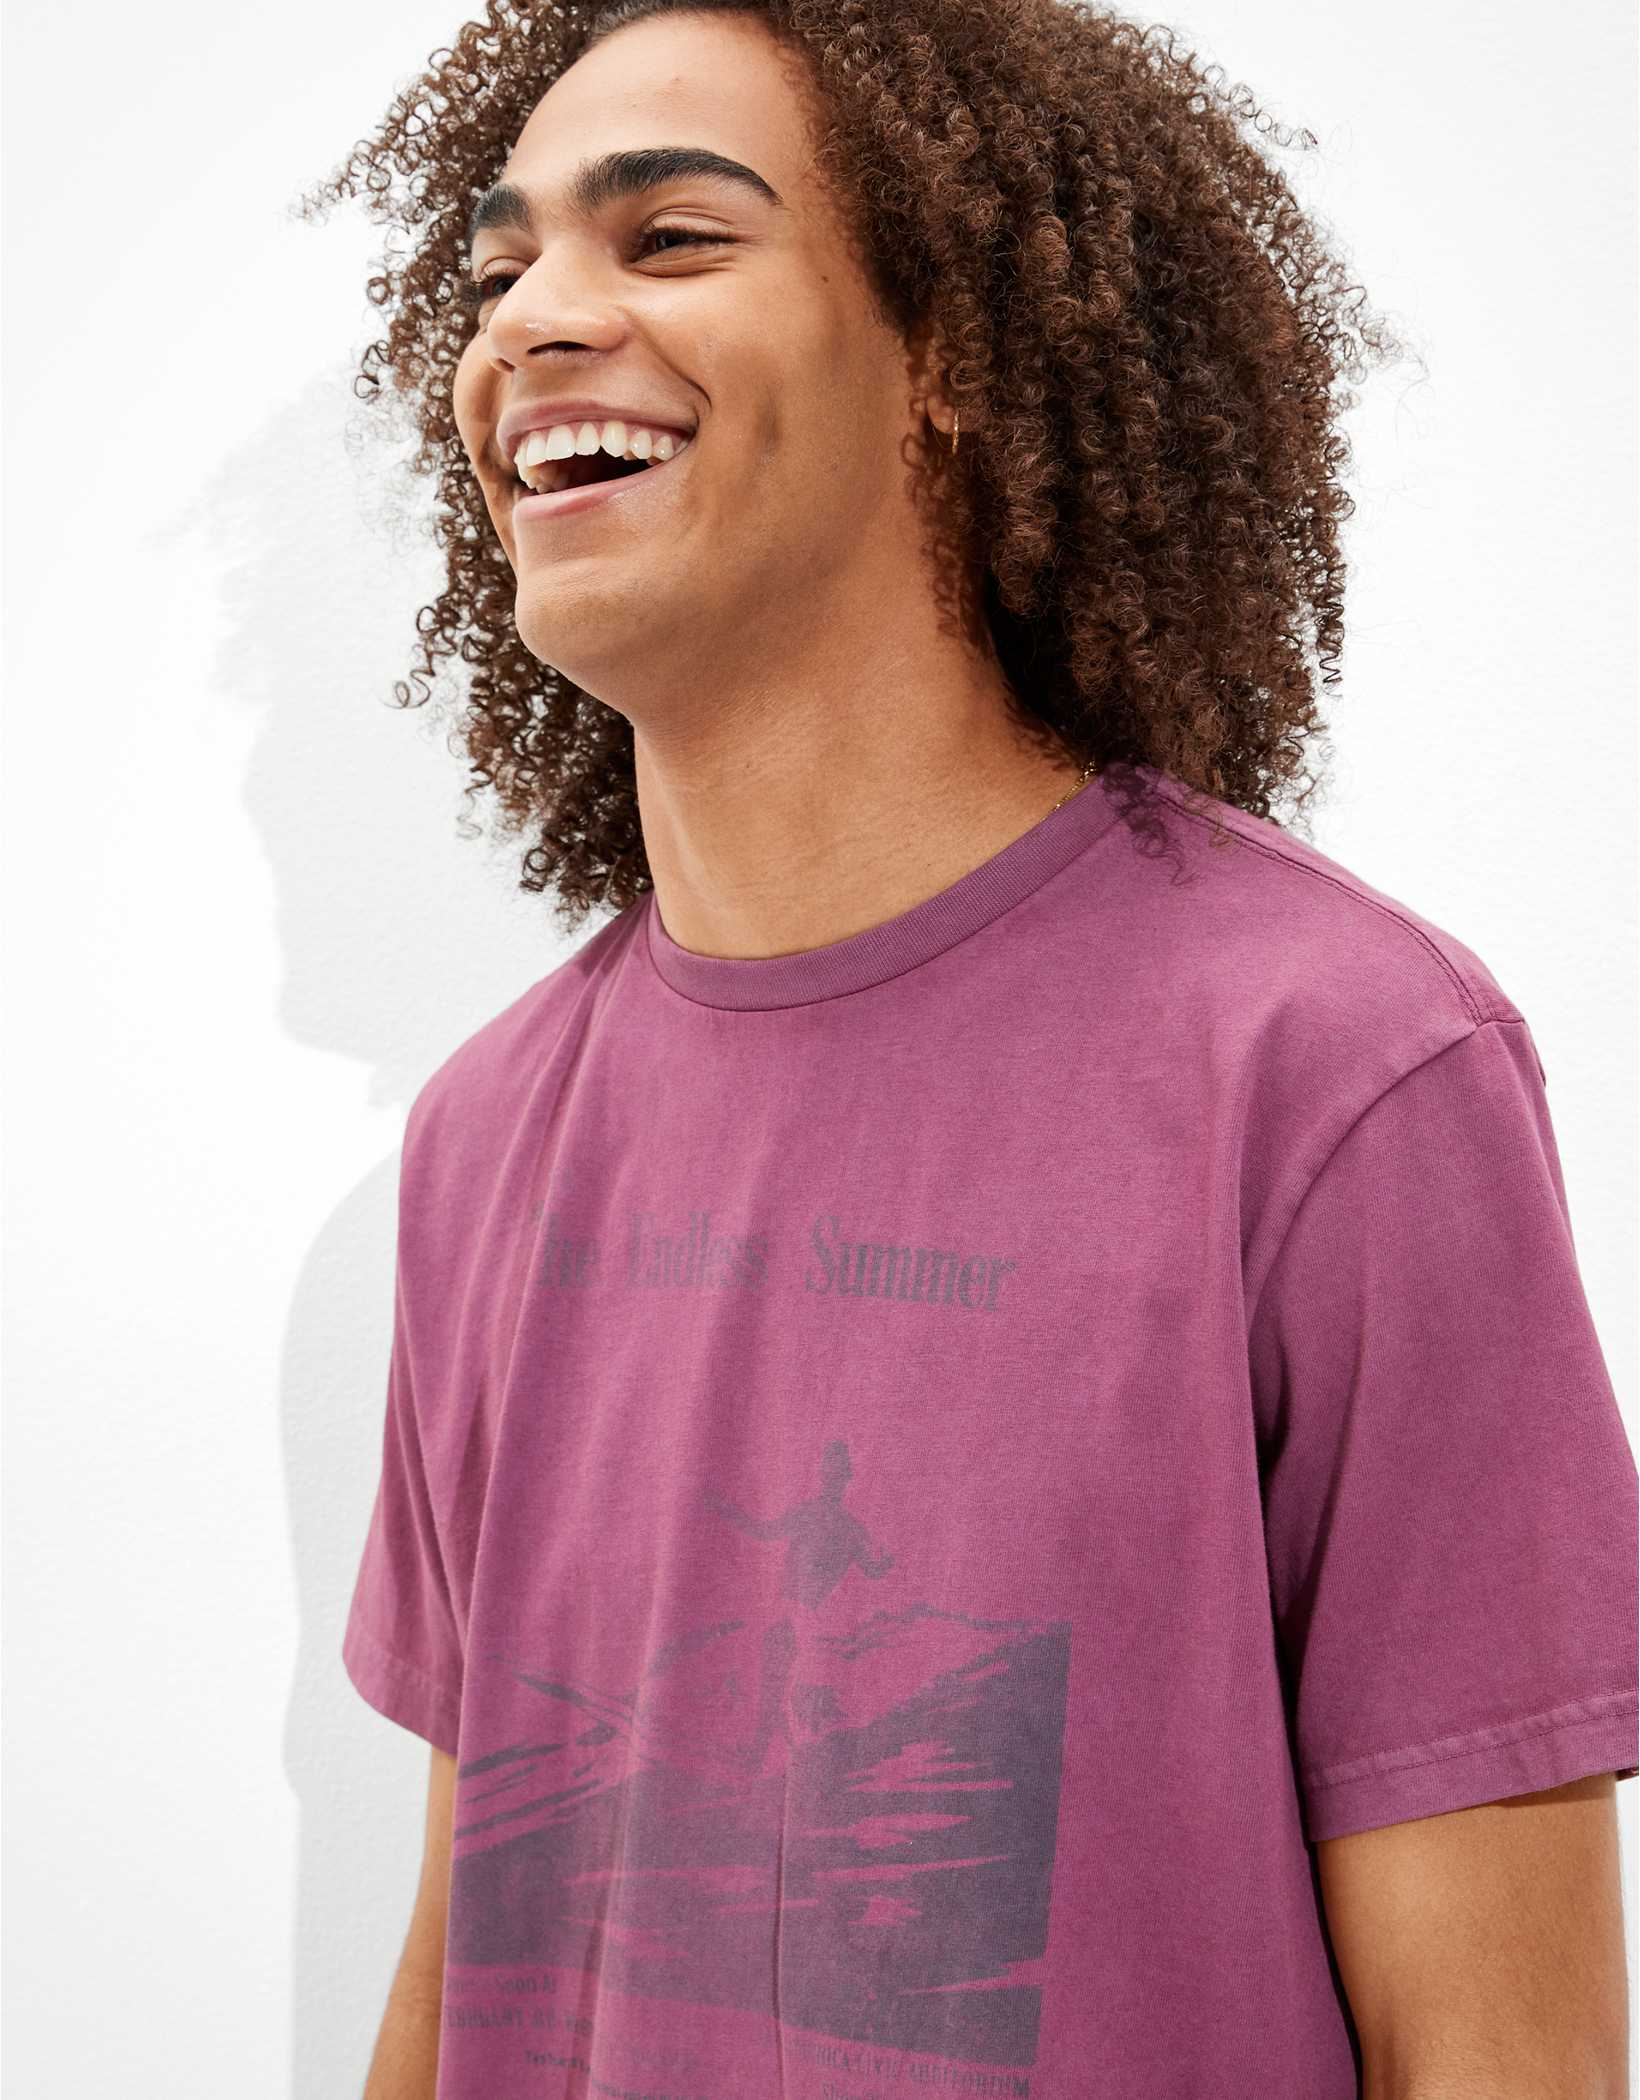 Tailgate Men's The Endless Summer Graphic T-Shirt